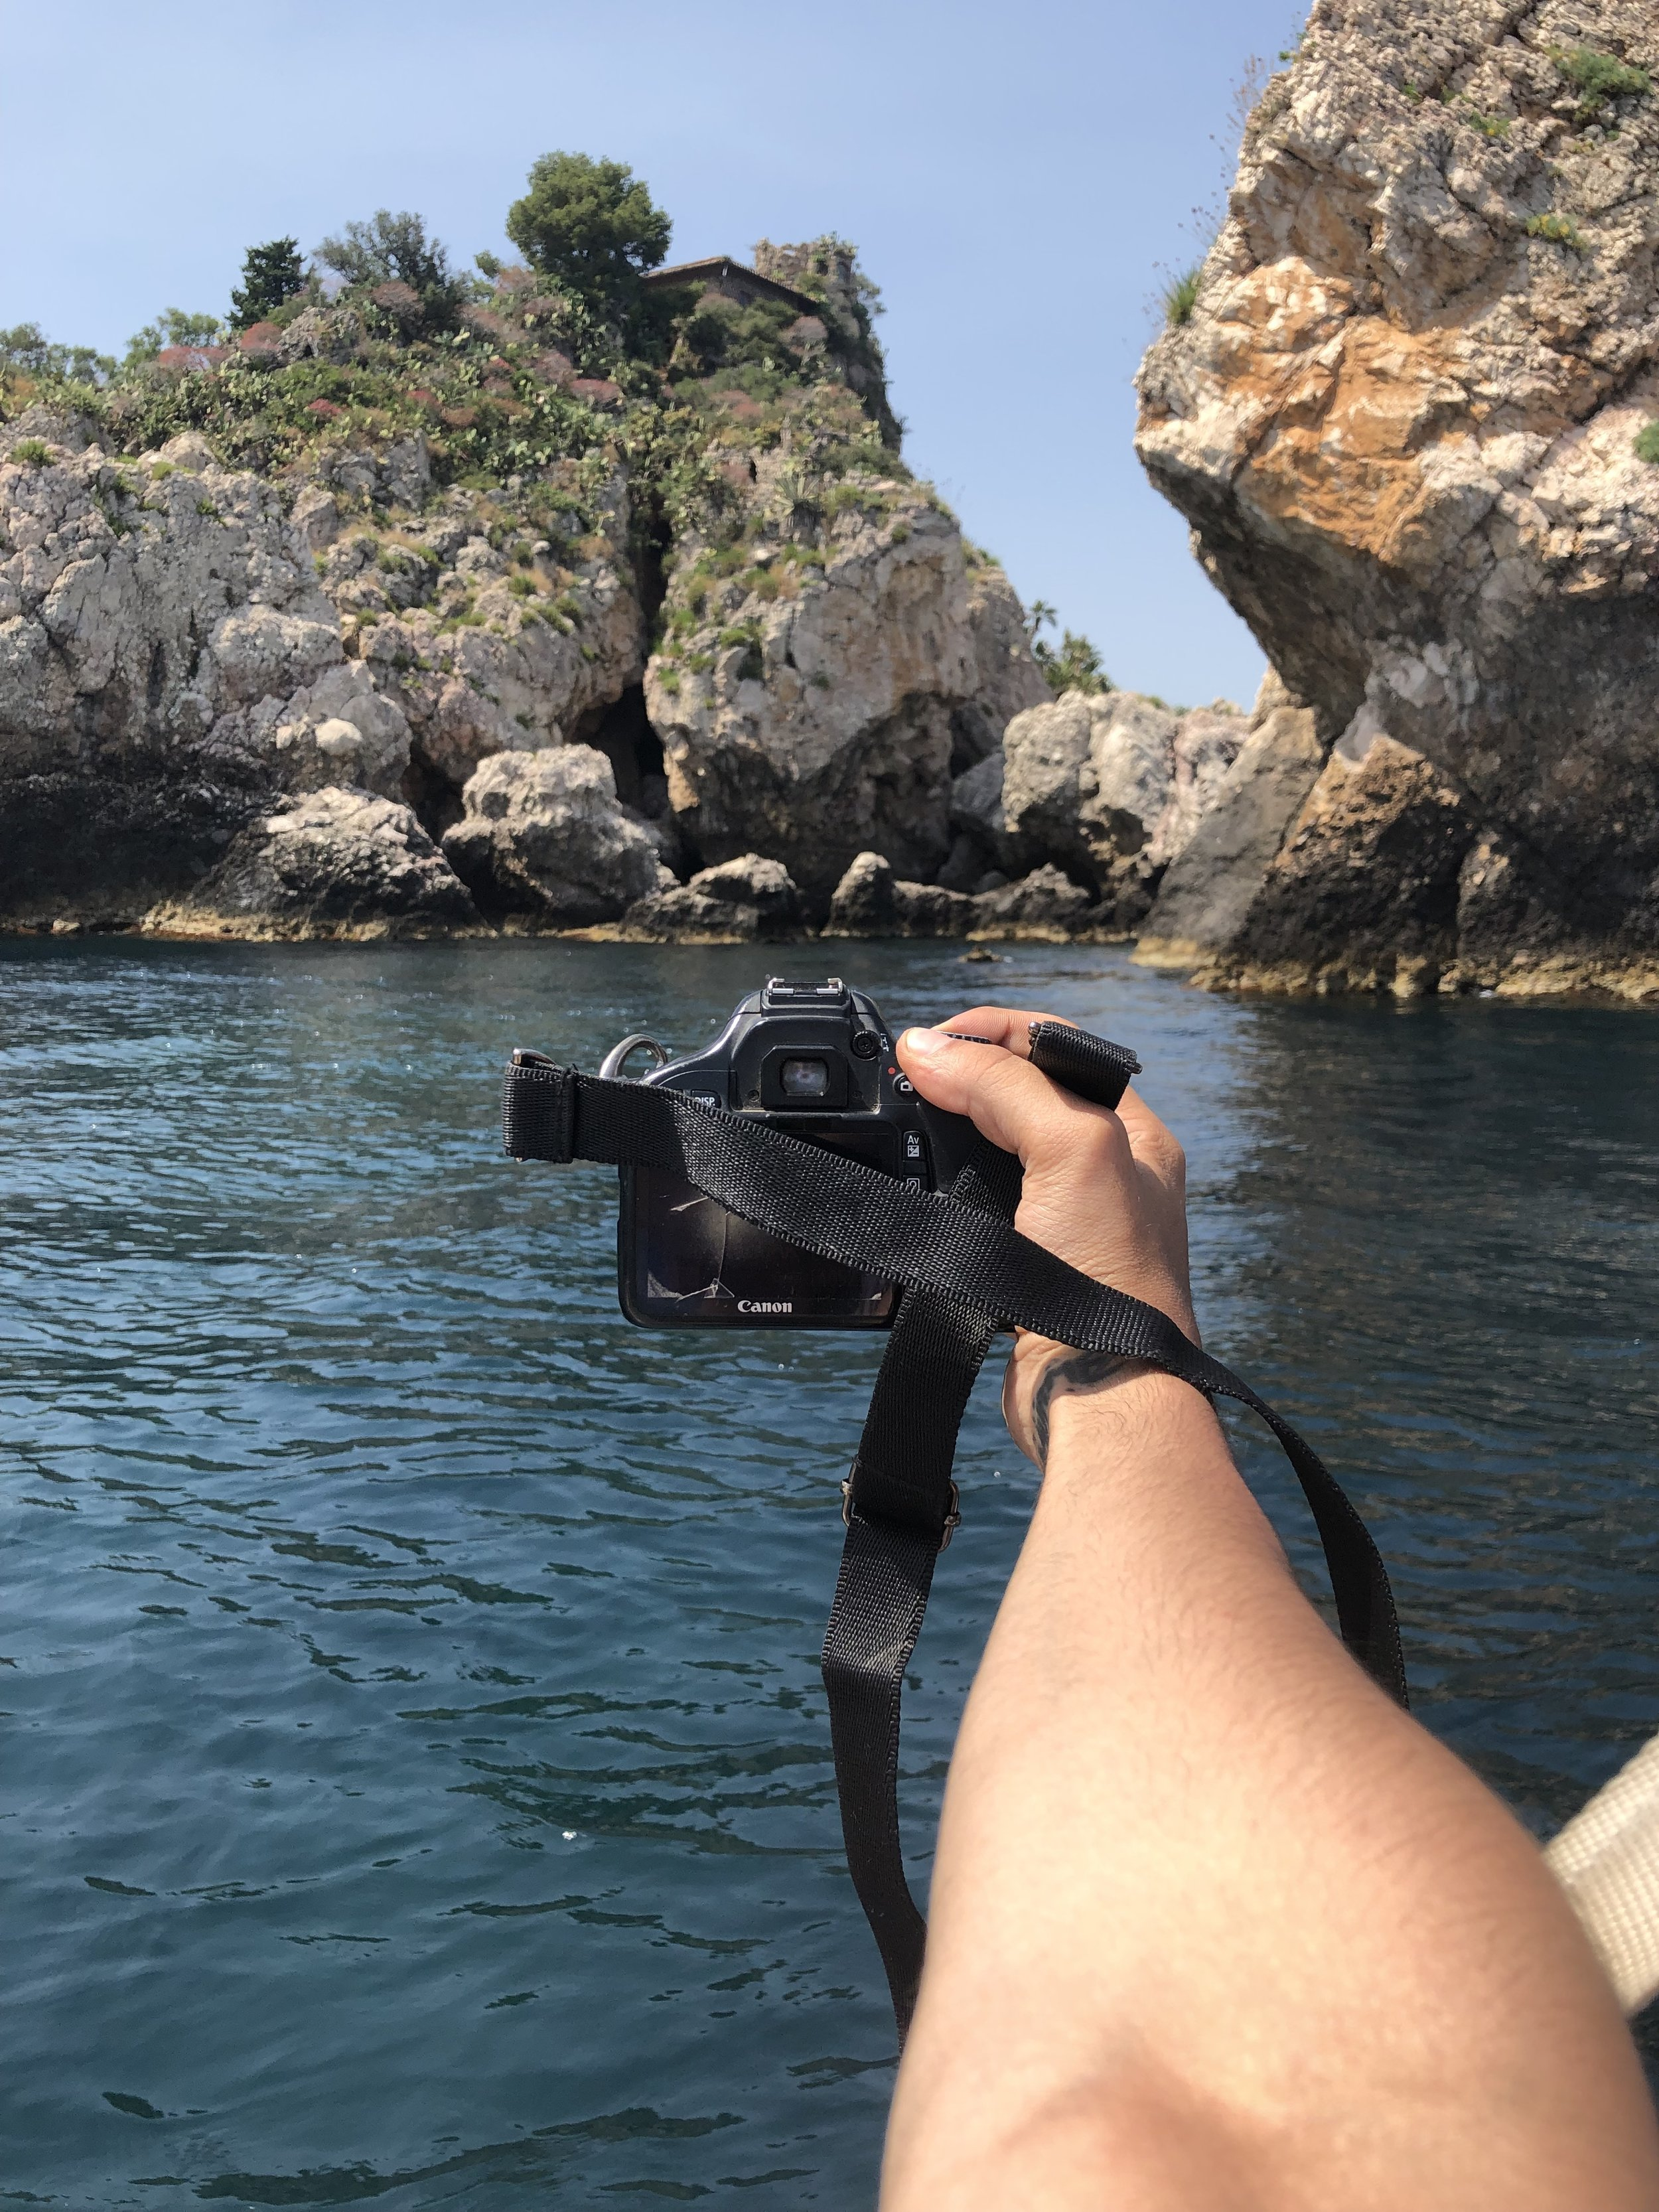 ISOLA BELLA, TAORMINA, SICILIA - 3 AGOSTO 2019 - Getting my mind lost thru the Sicilian coastline and the many fascinating locations of this area. I think I need to get a diving license after this trip!